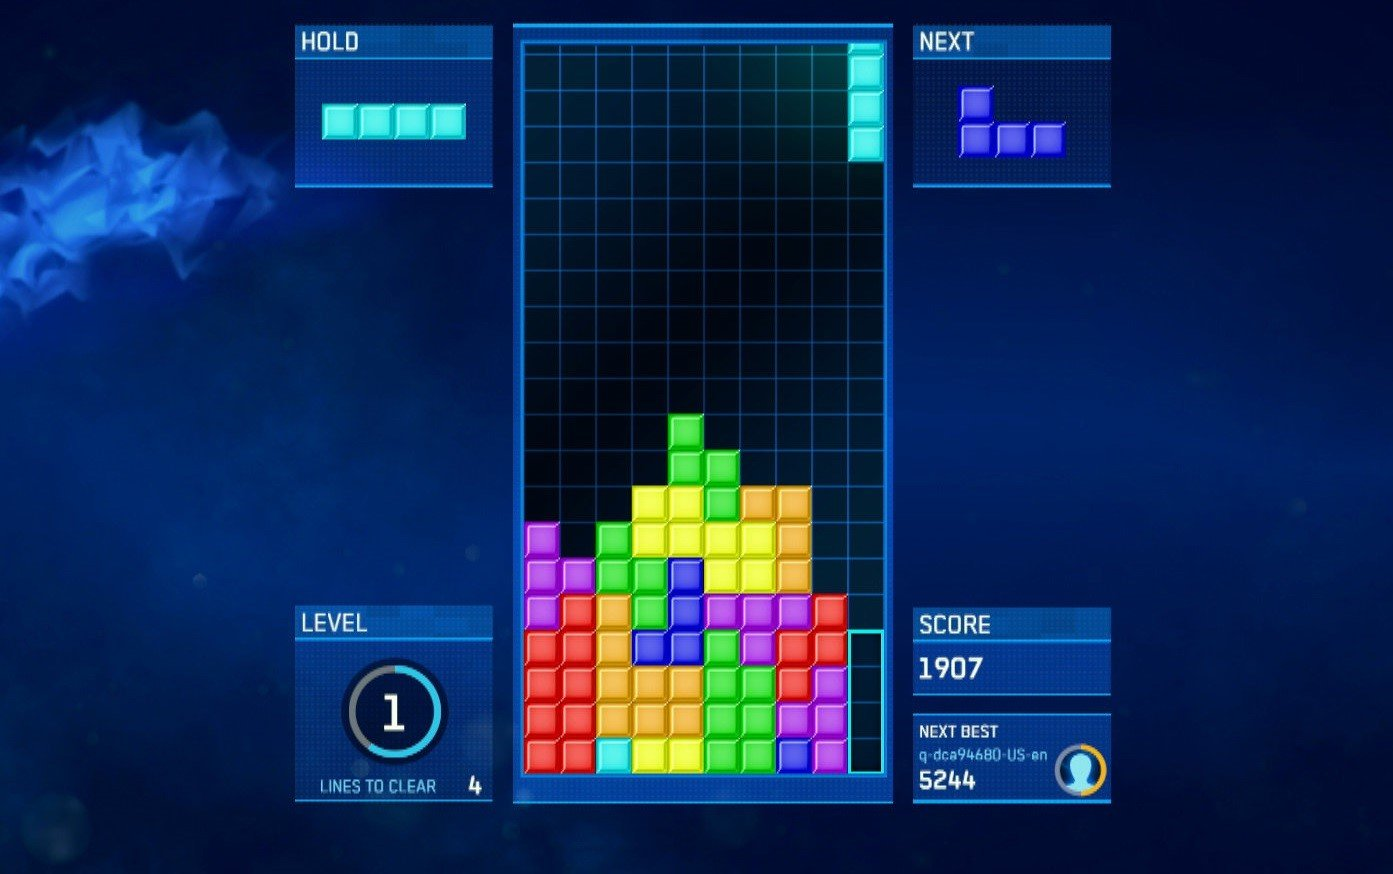 5 Things I Wish I'd Known as a Tetris Beginner